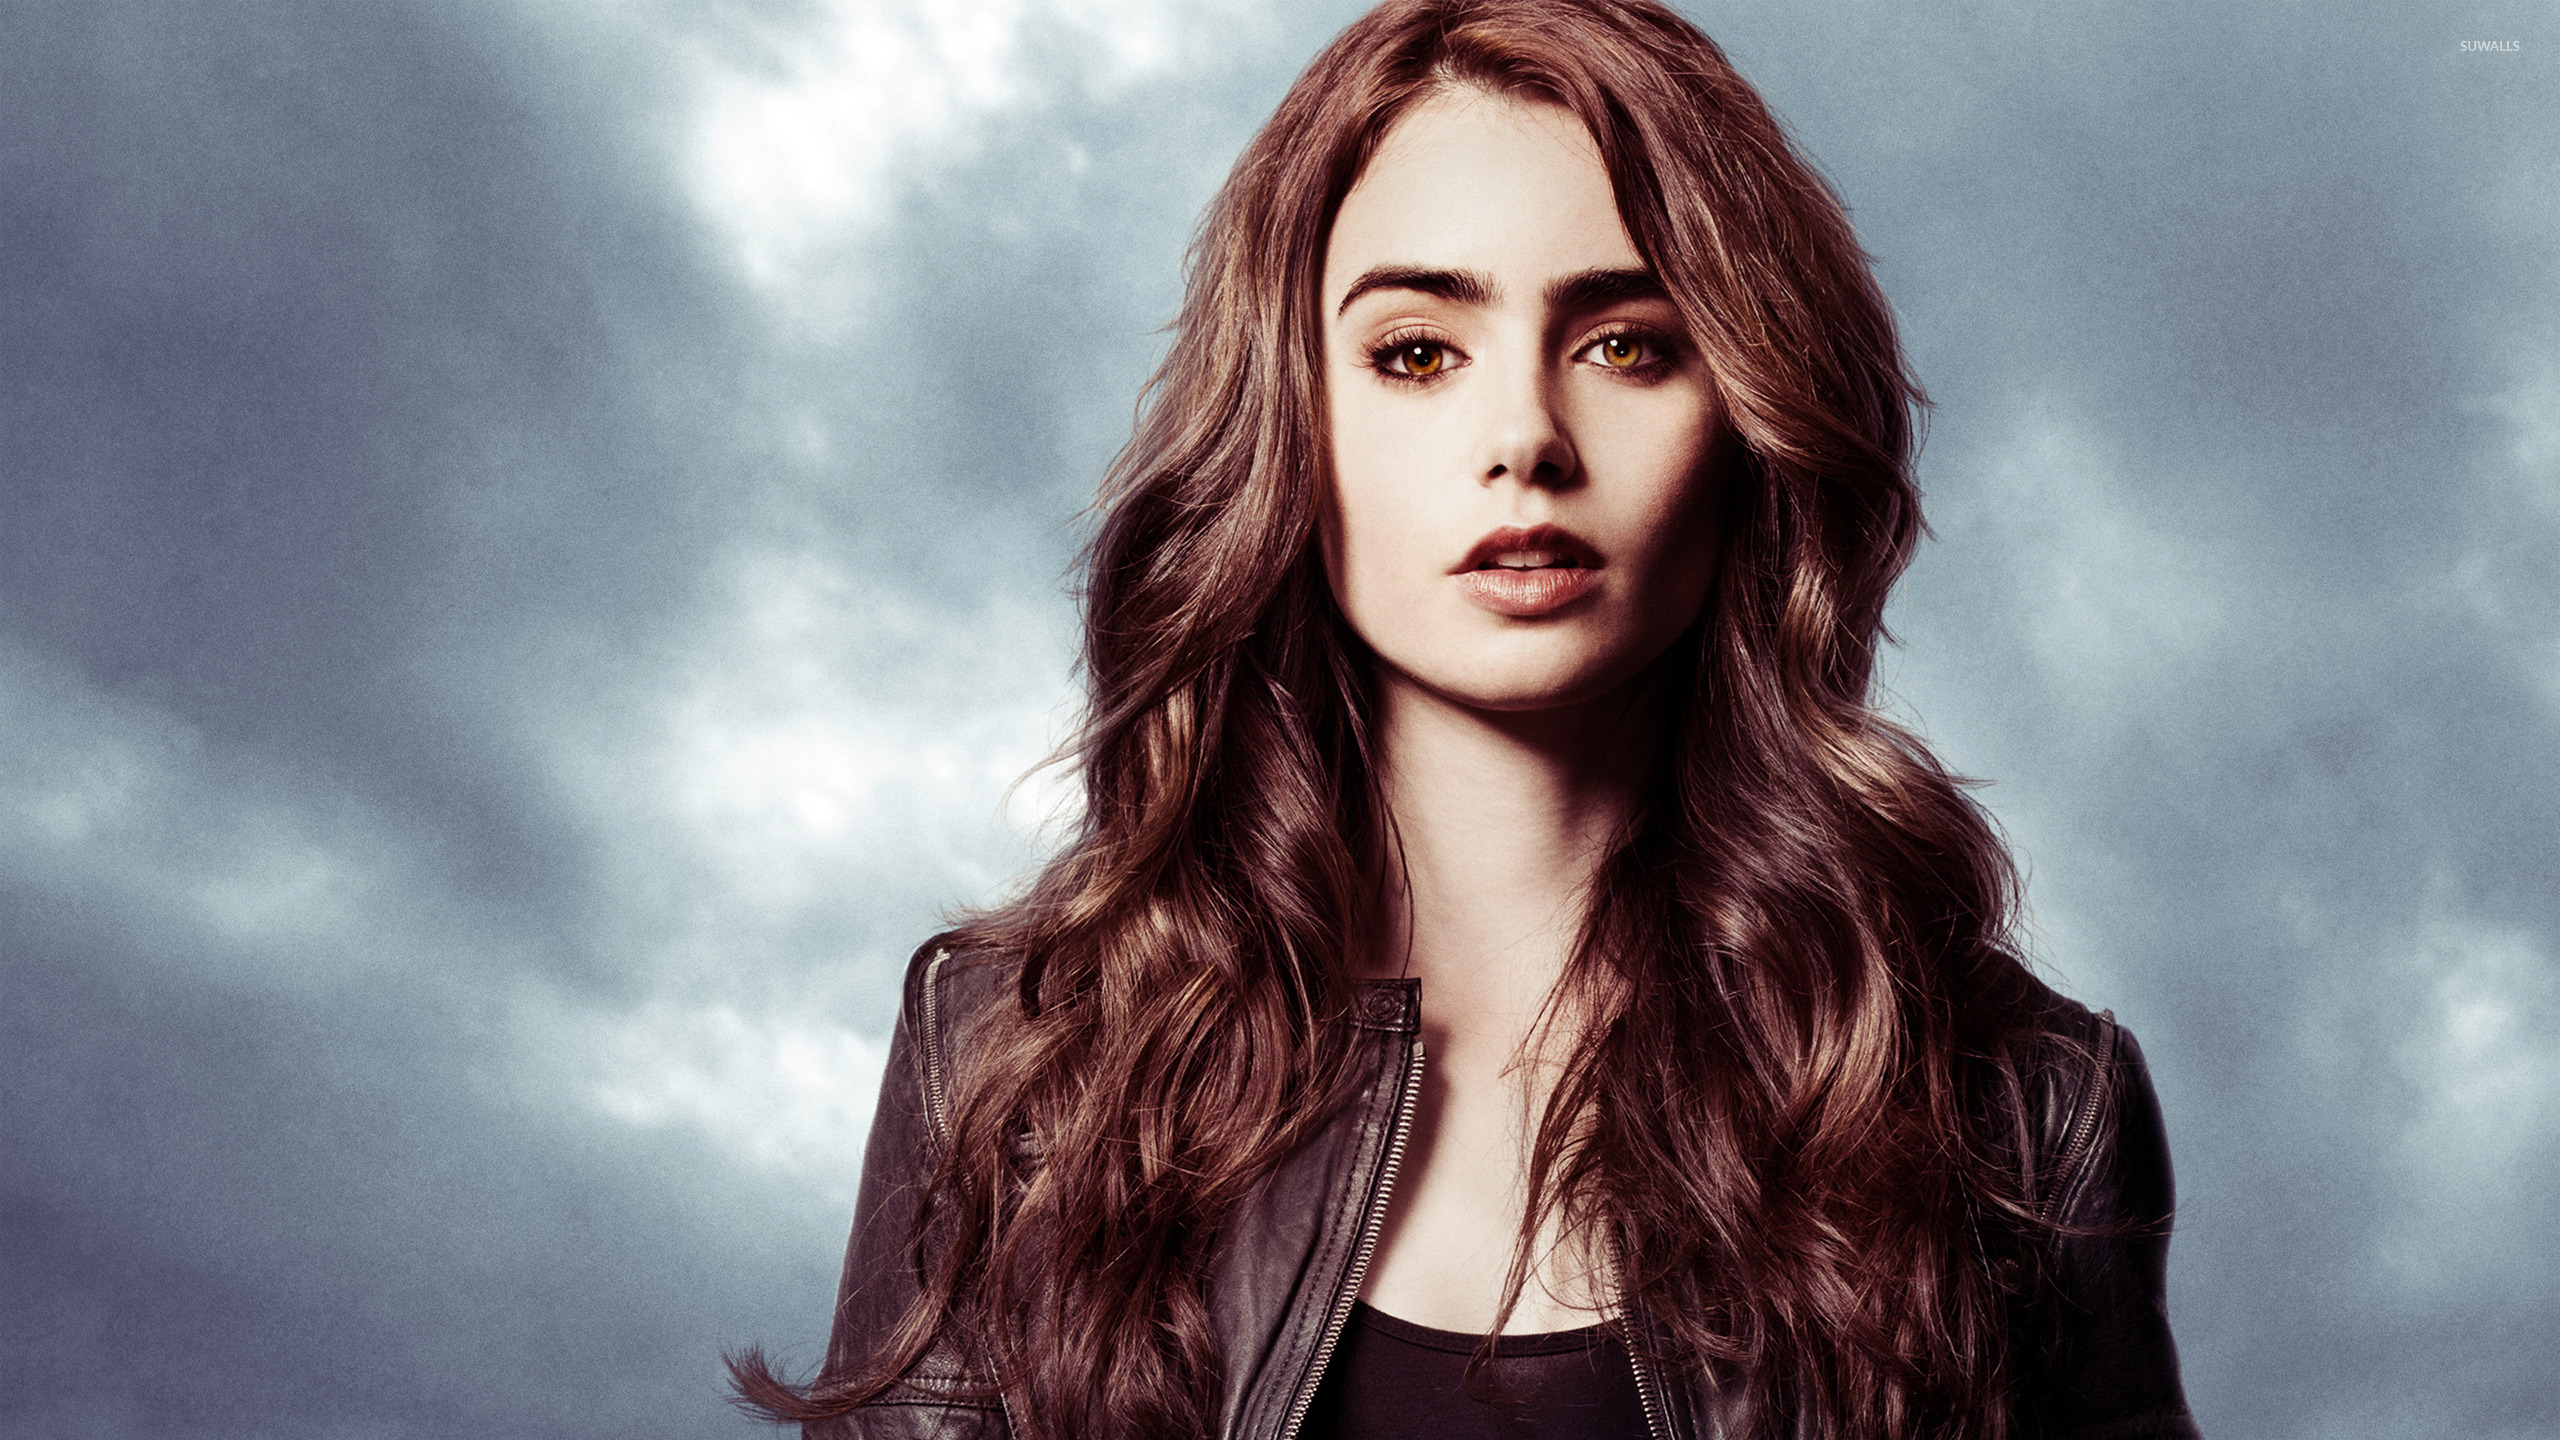 Clary - The Mortal Instruments: City of Bones wallpaper ...